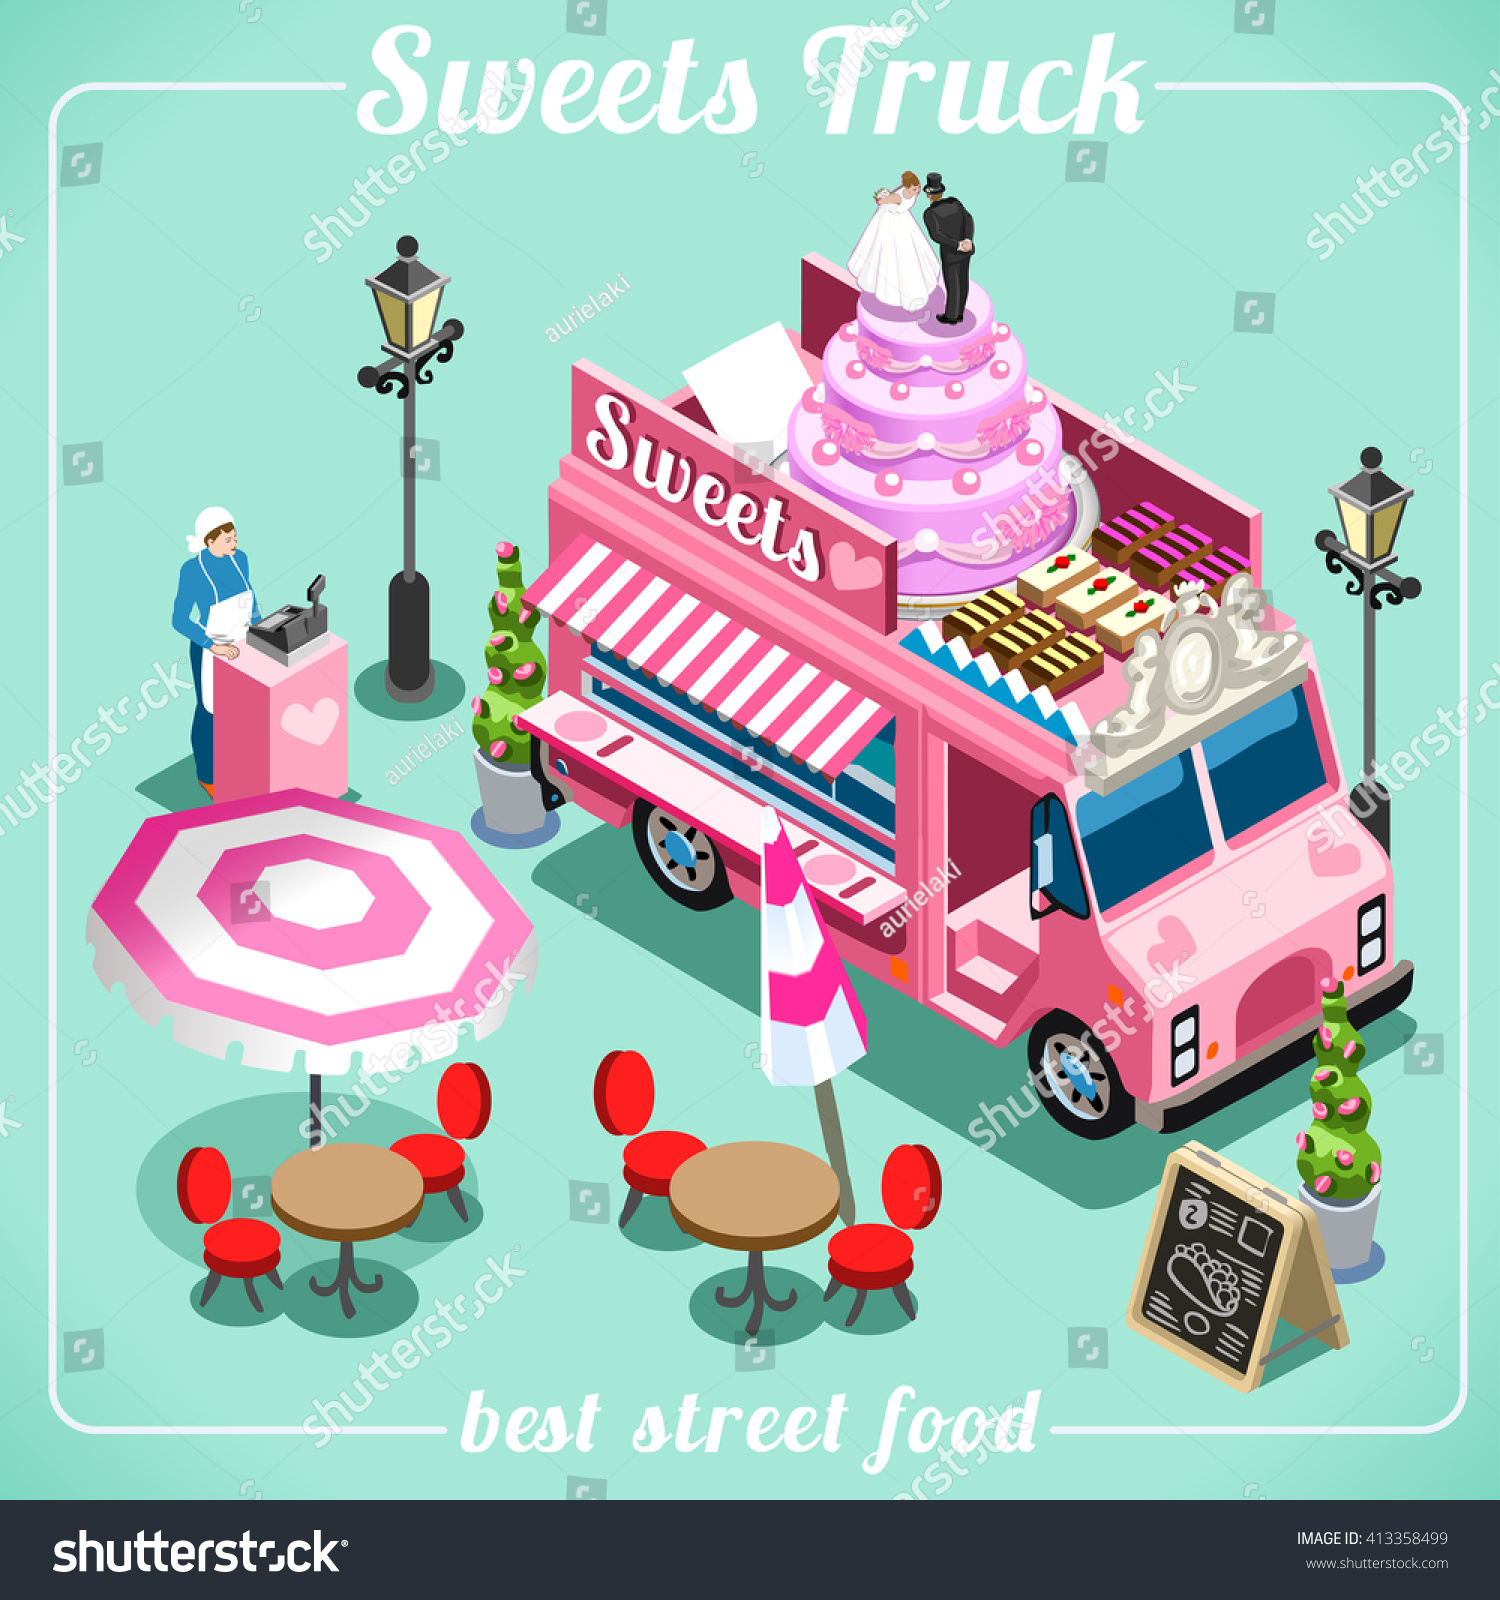 Sweets Breakfast Bakery Food Truck Delivery Stock Vector Royalty Free 413358499